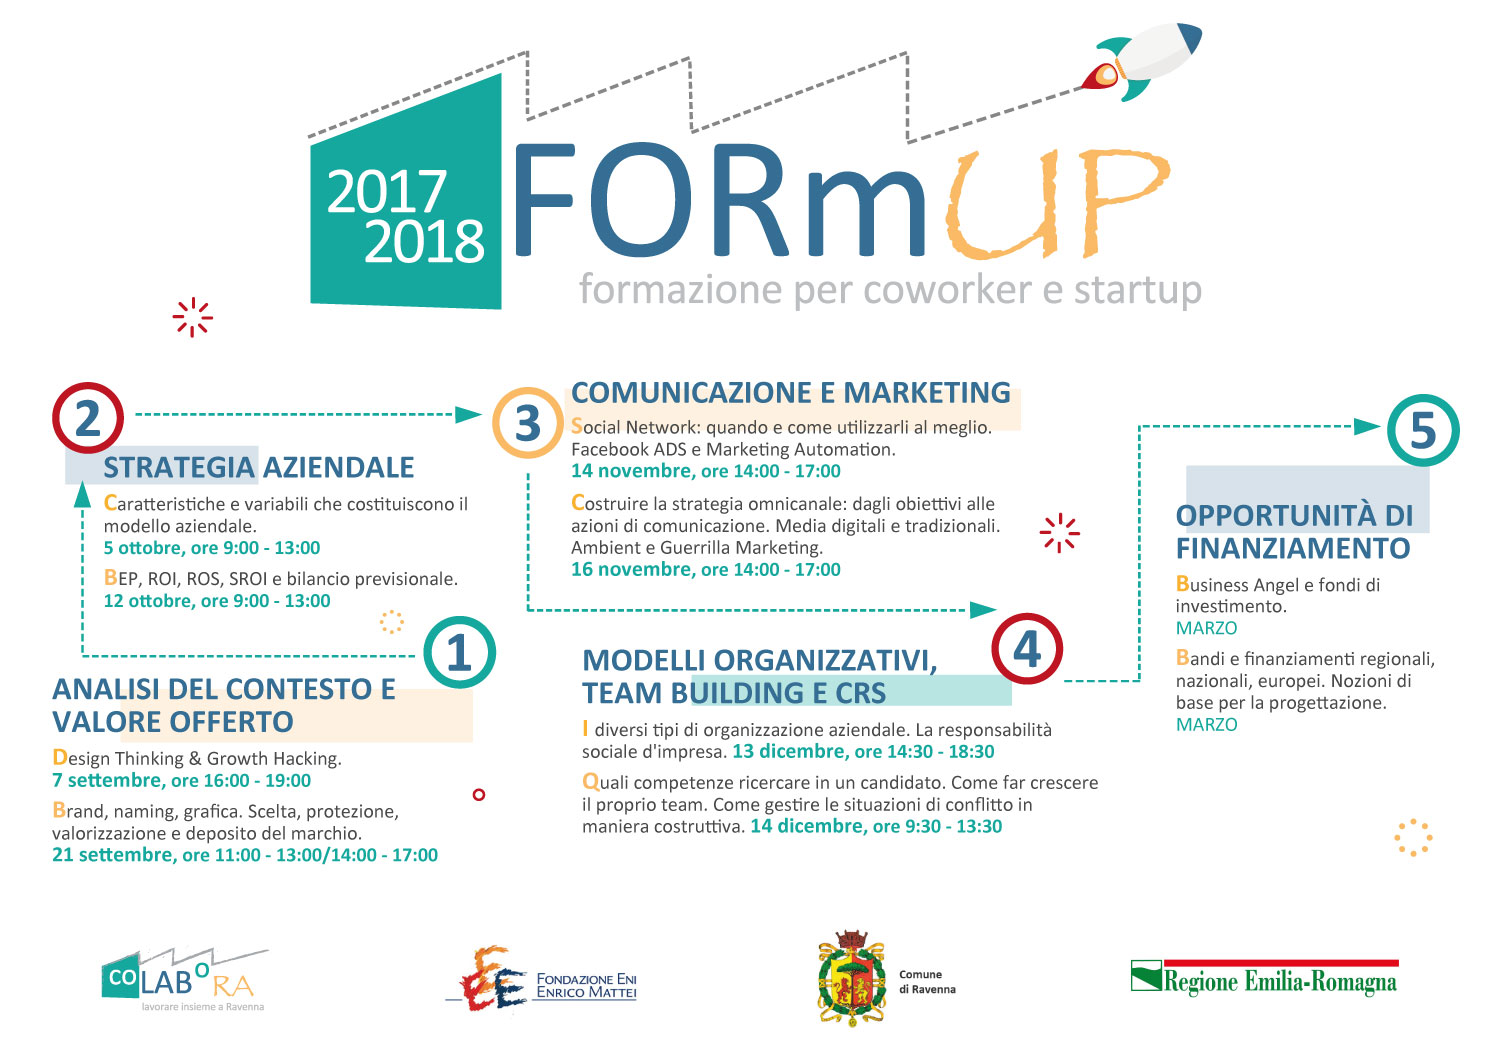 Formup_2017_18